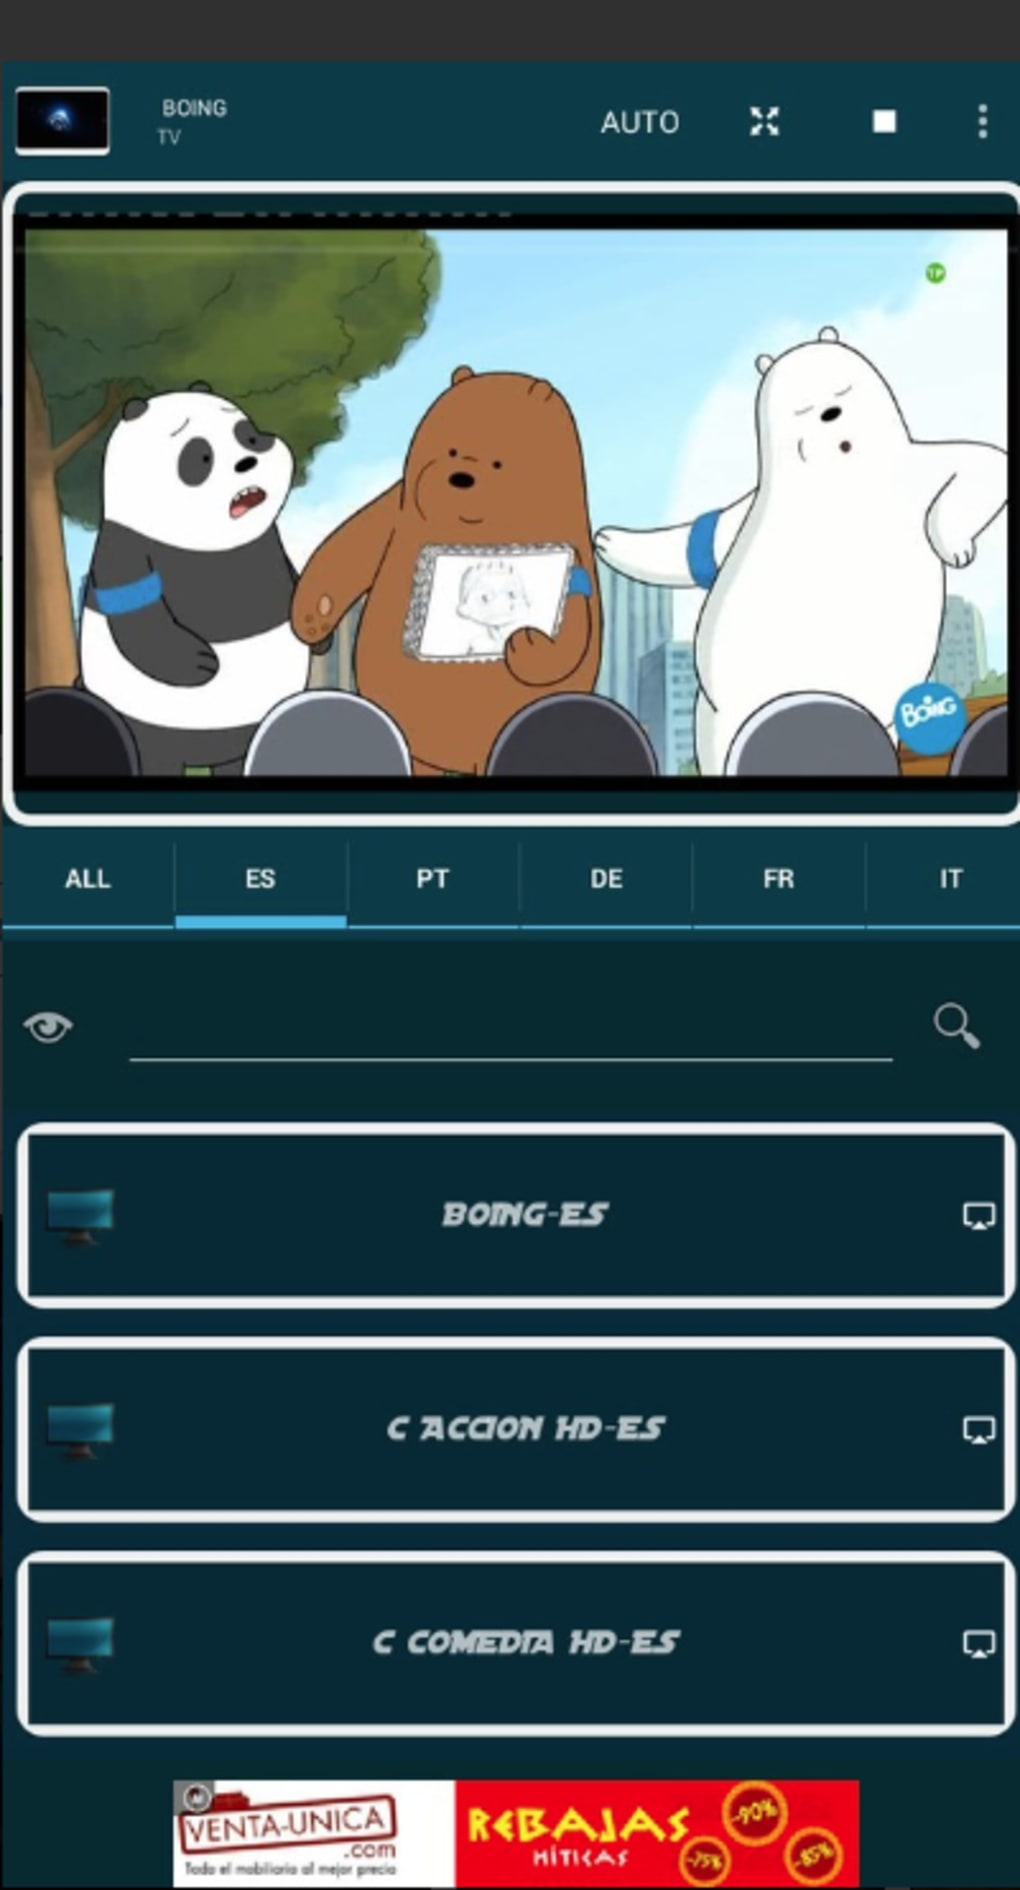 BABEL-TV for Android - Download